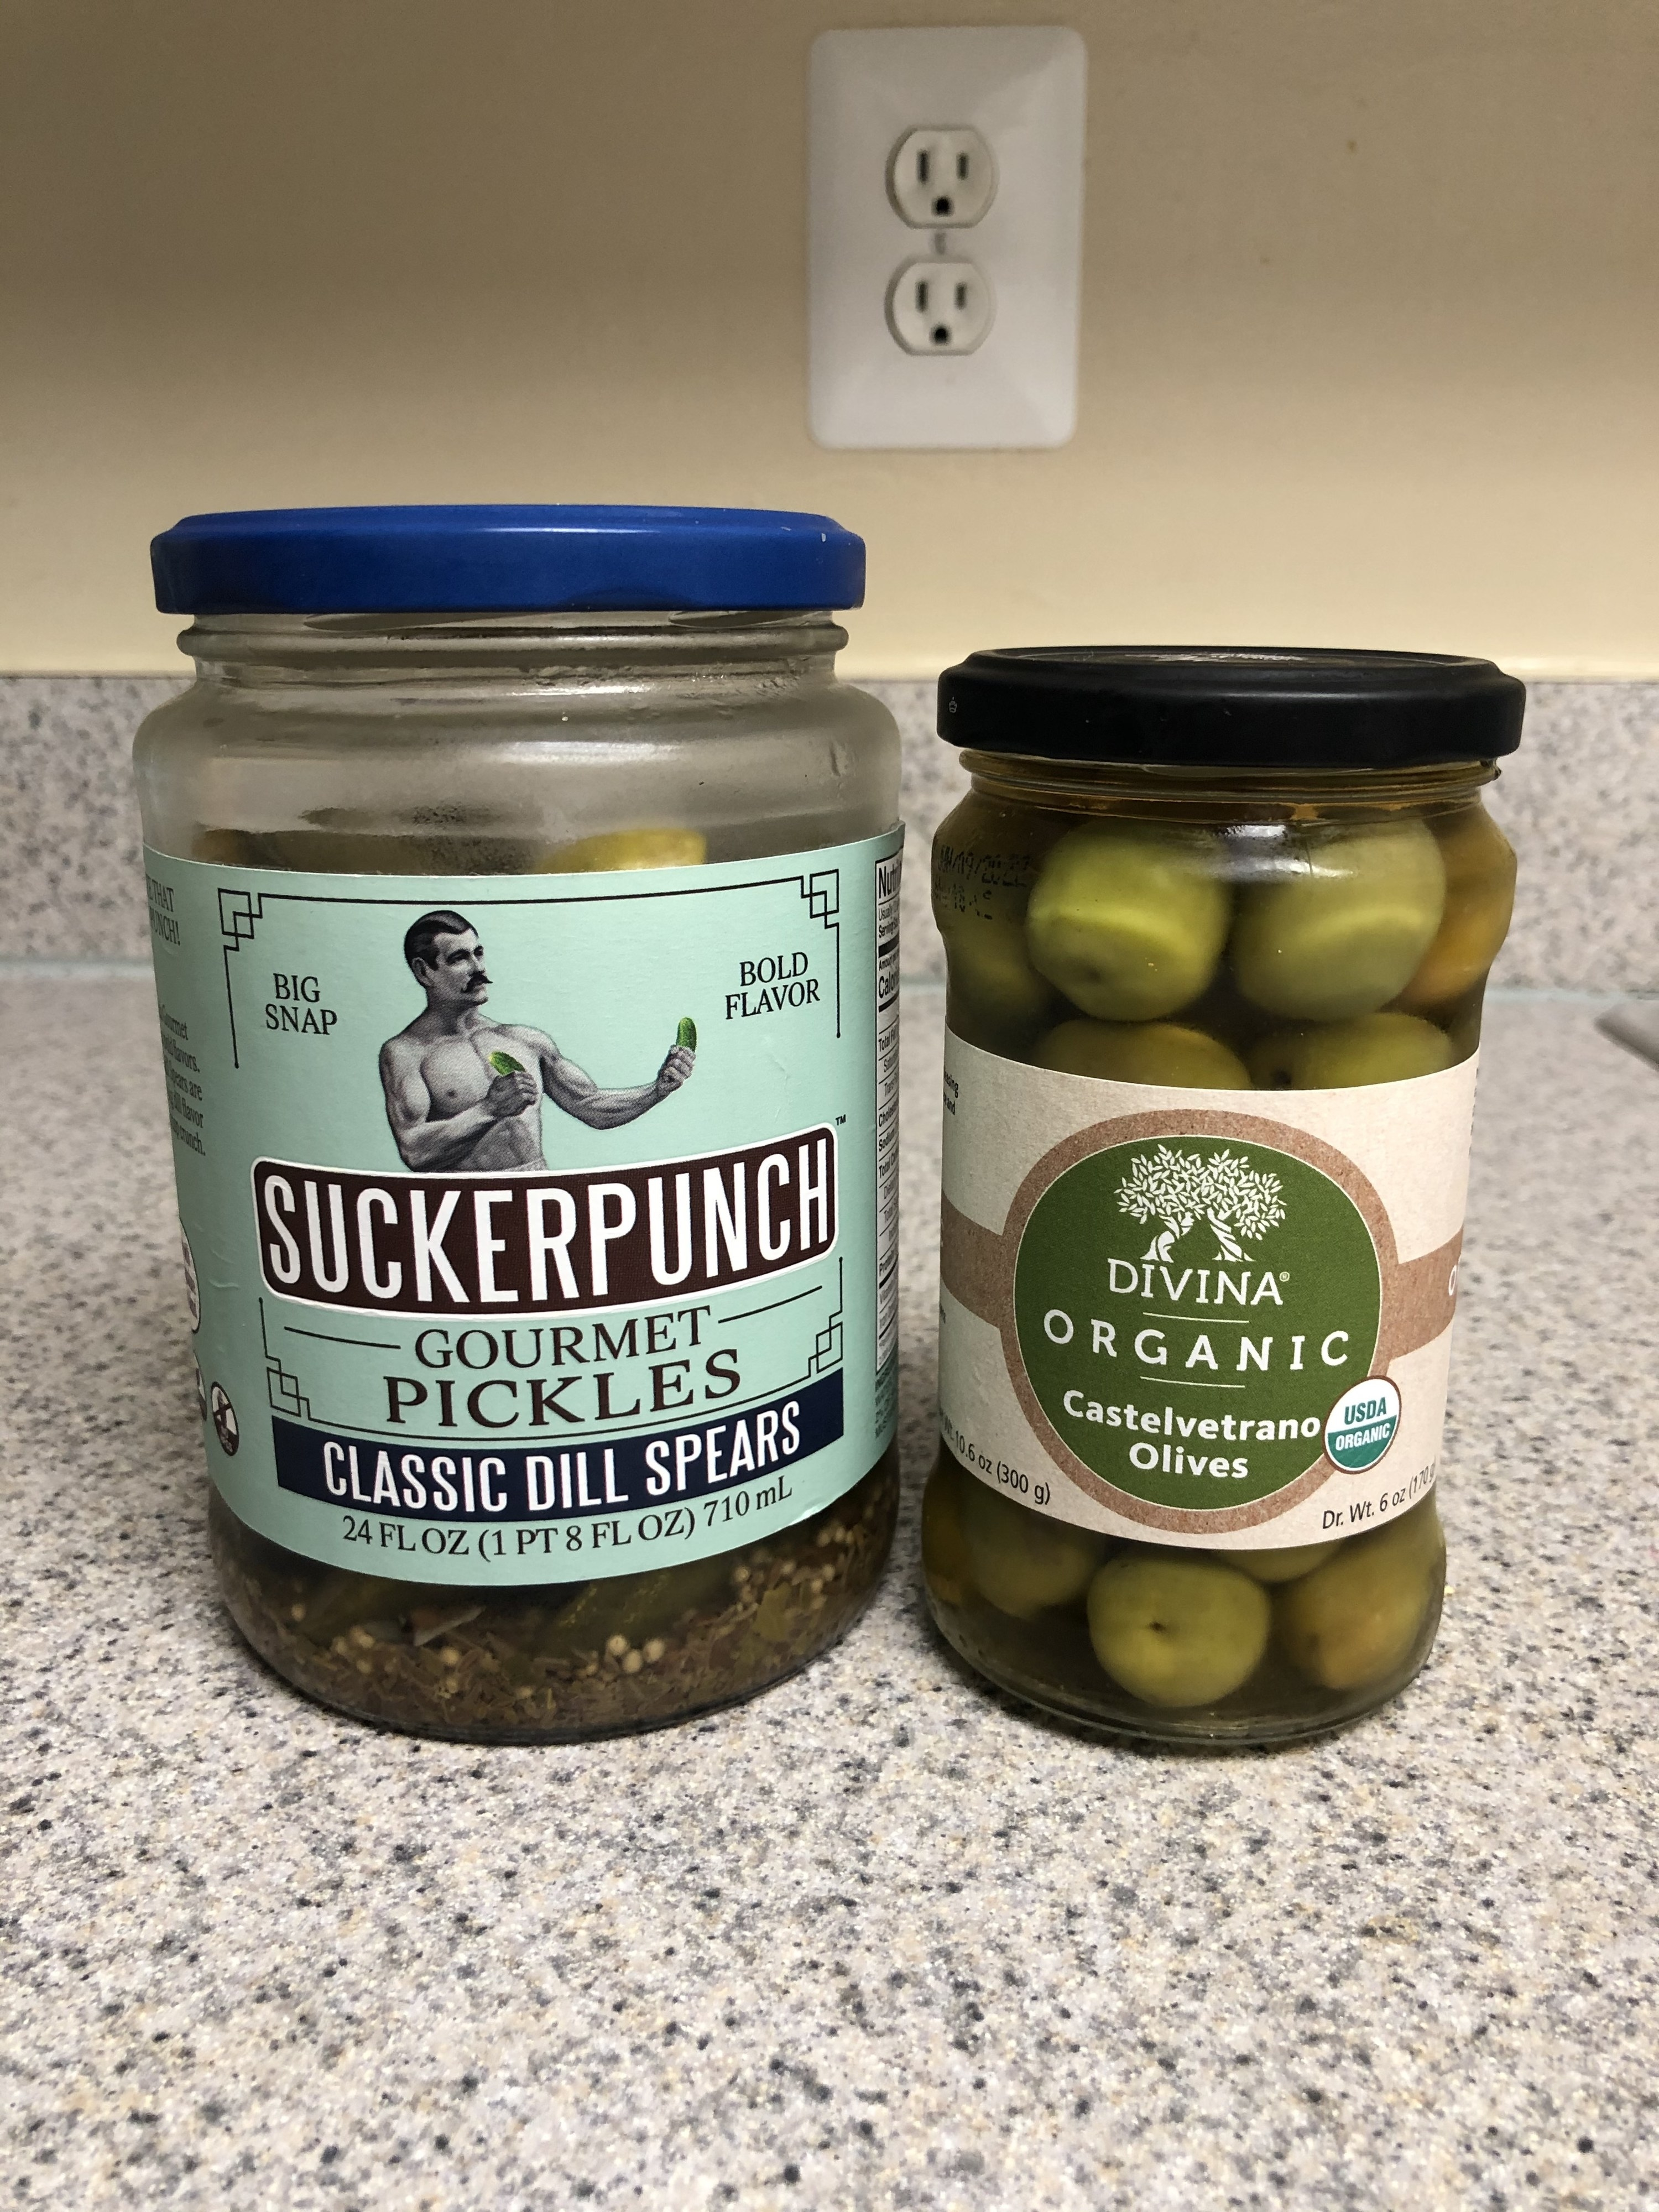 A jar of pickles next to a jar of green olives.